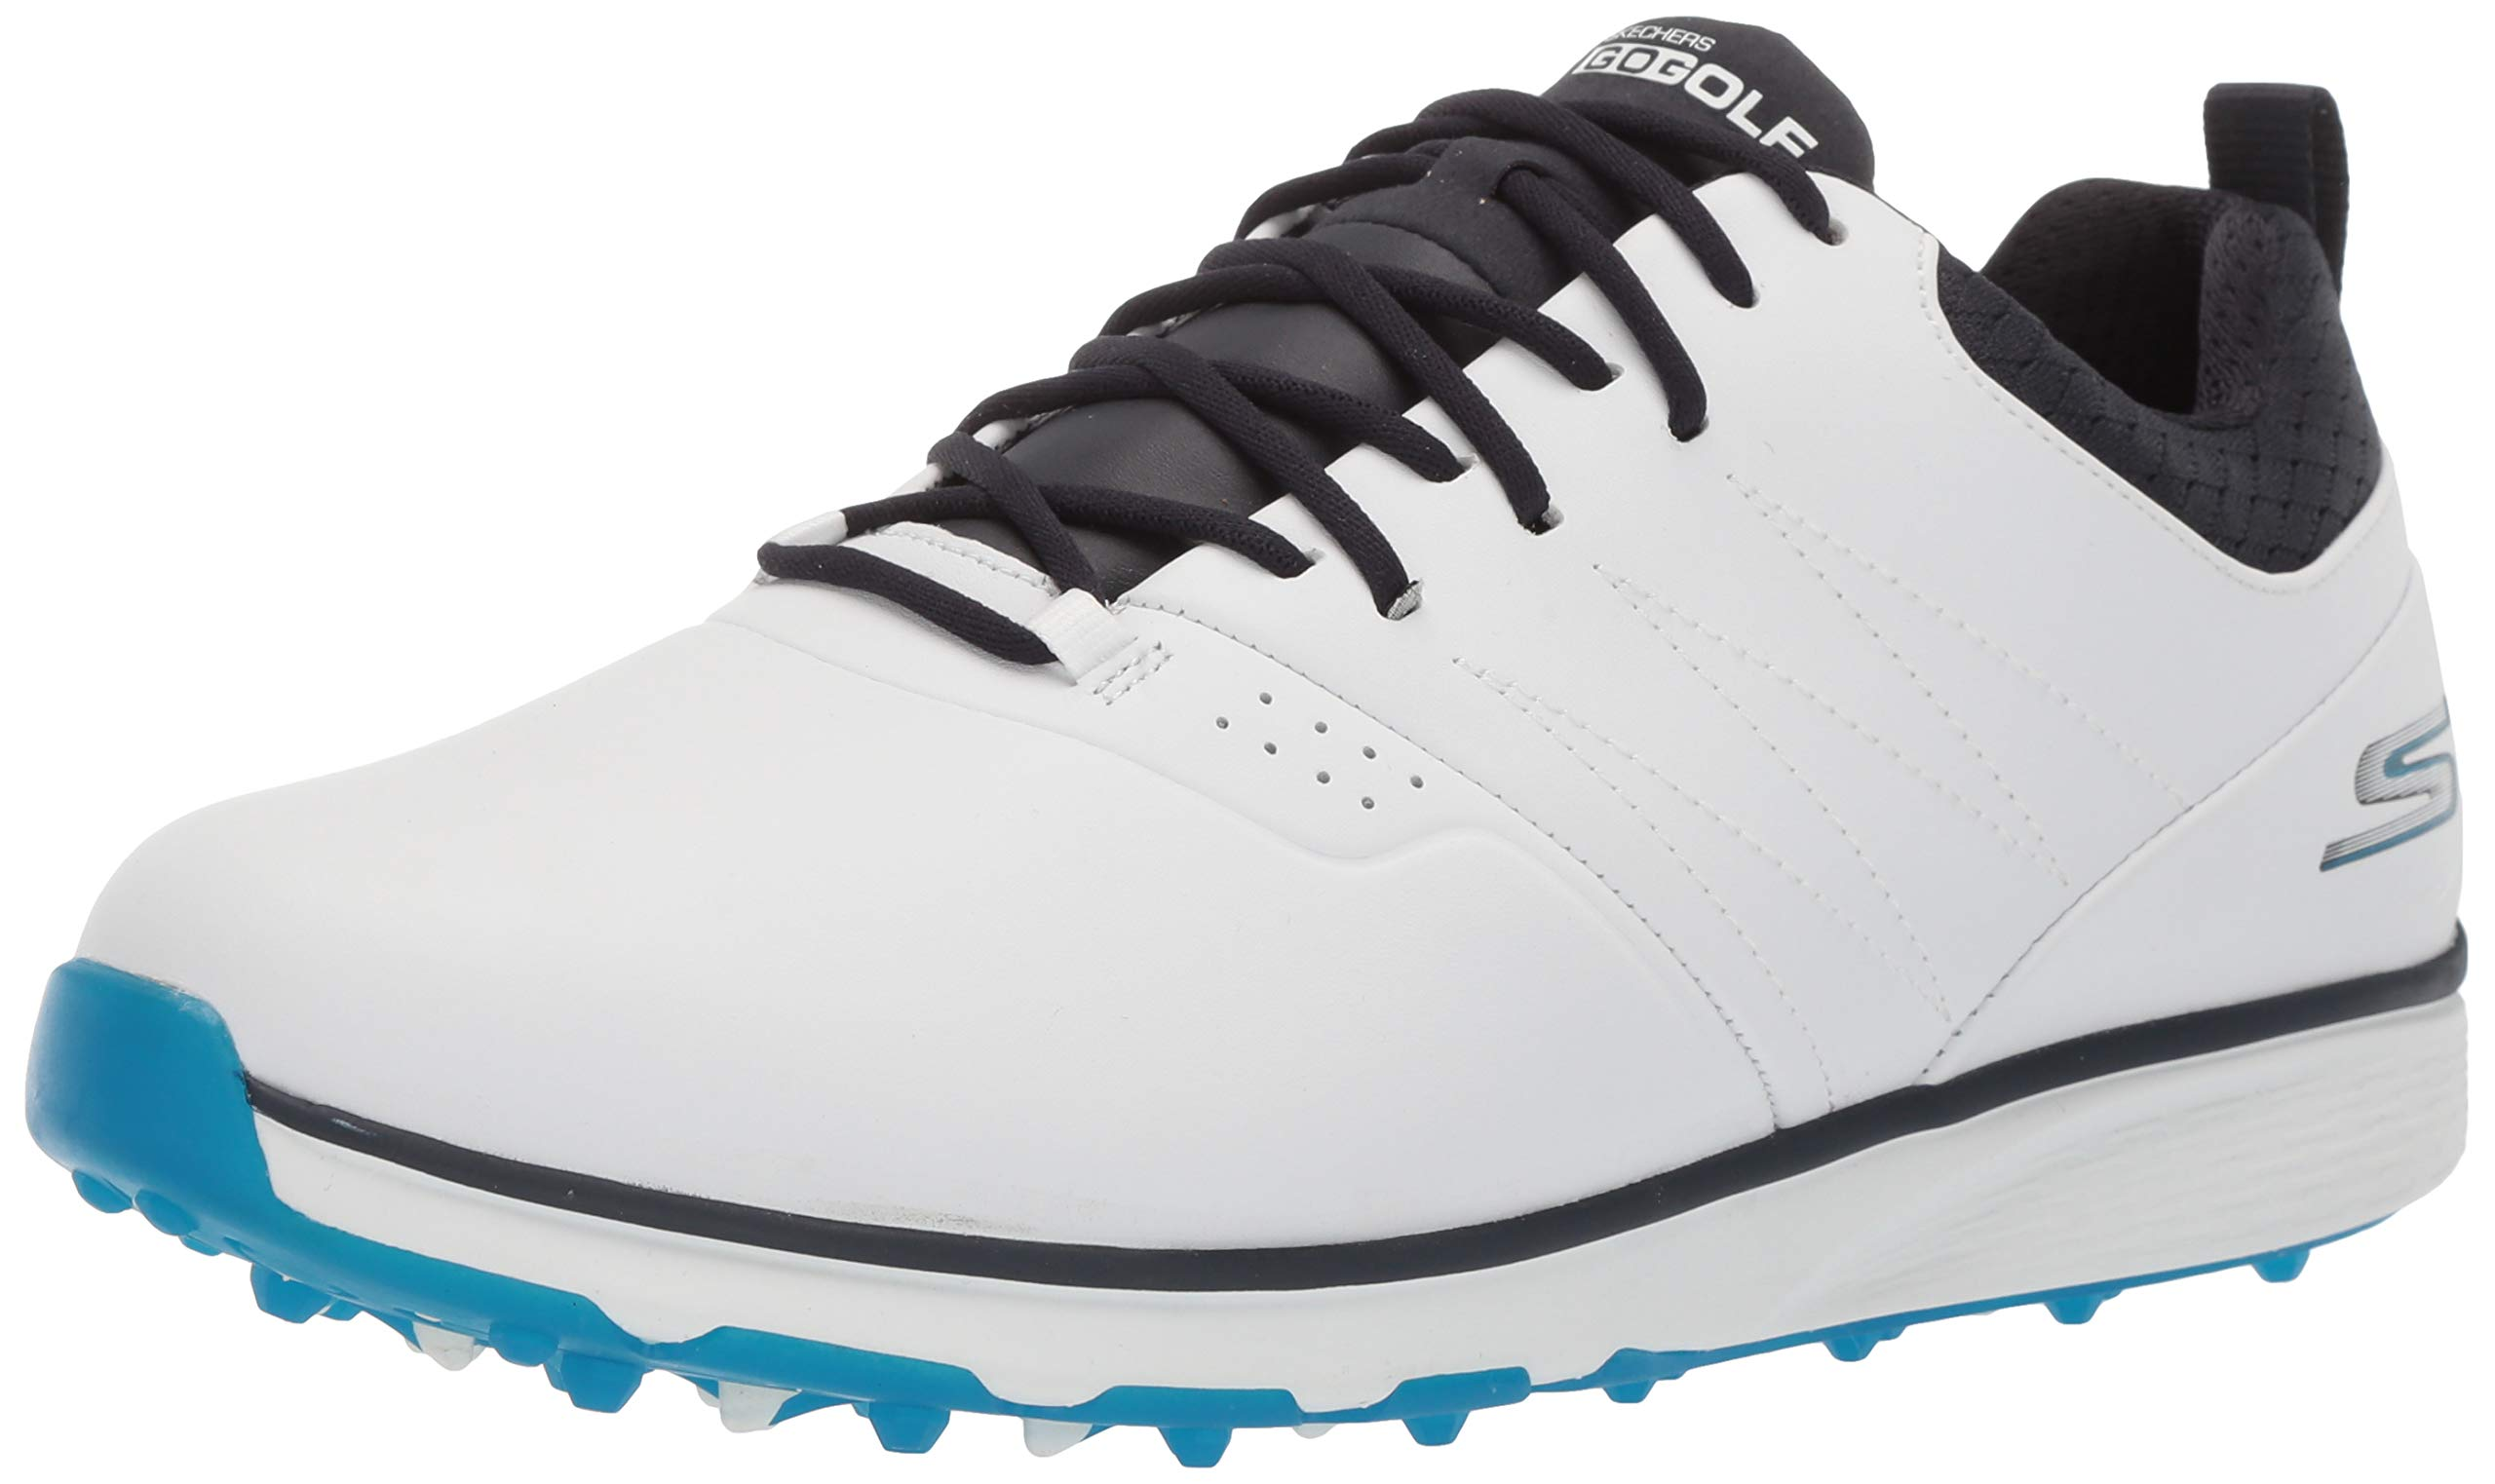 Skechers Men's Mojo Waterproof Golf Shoe, White/Blue, 13 W US by Skechers